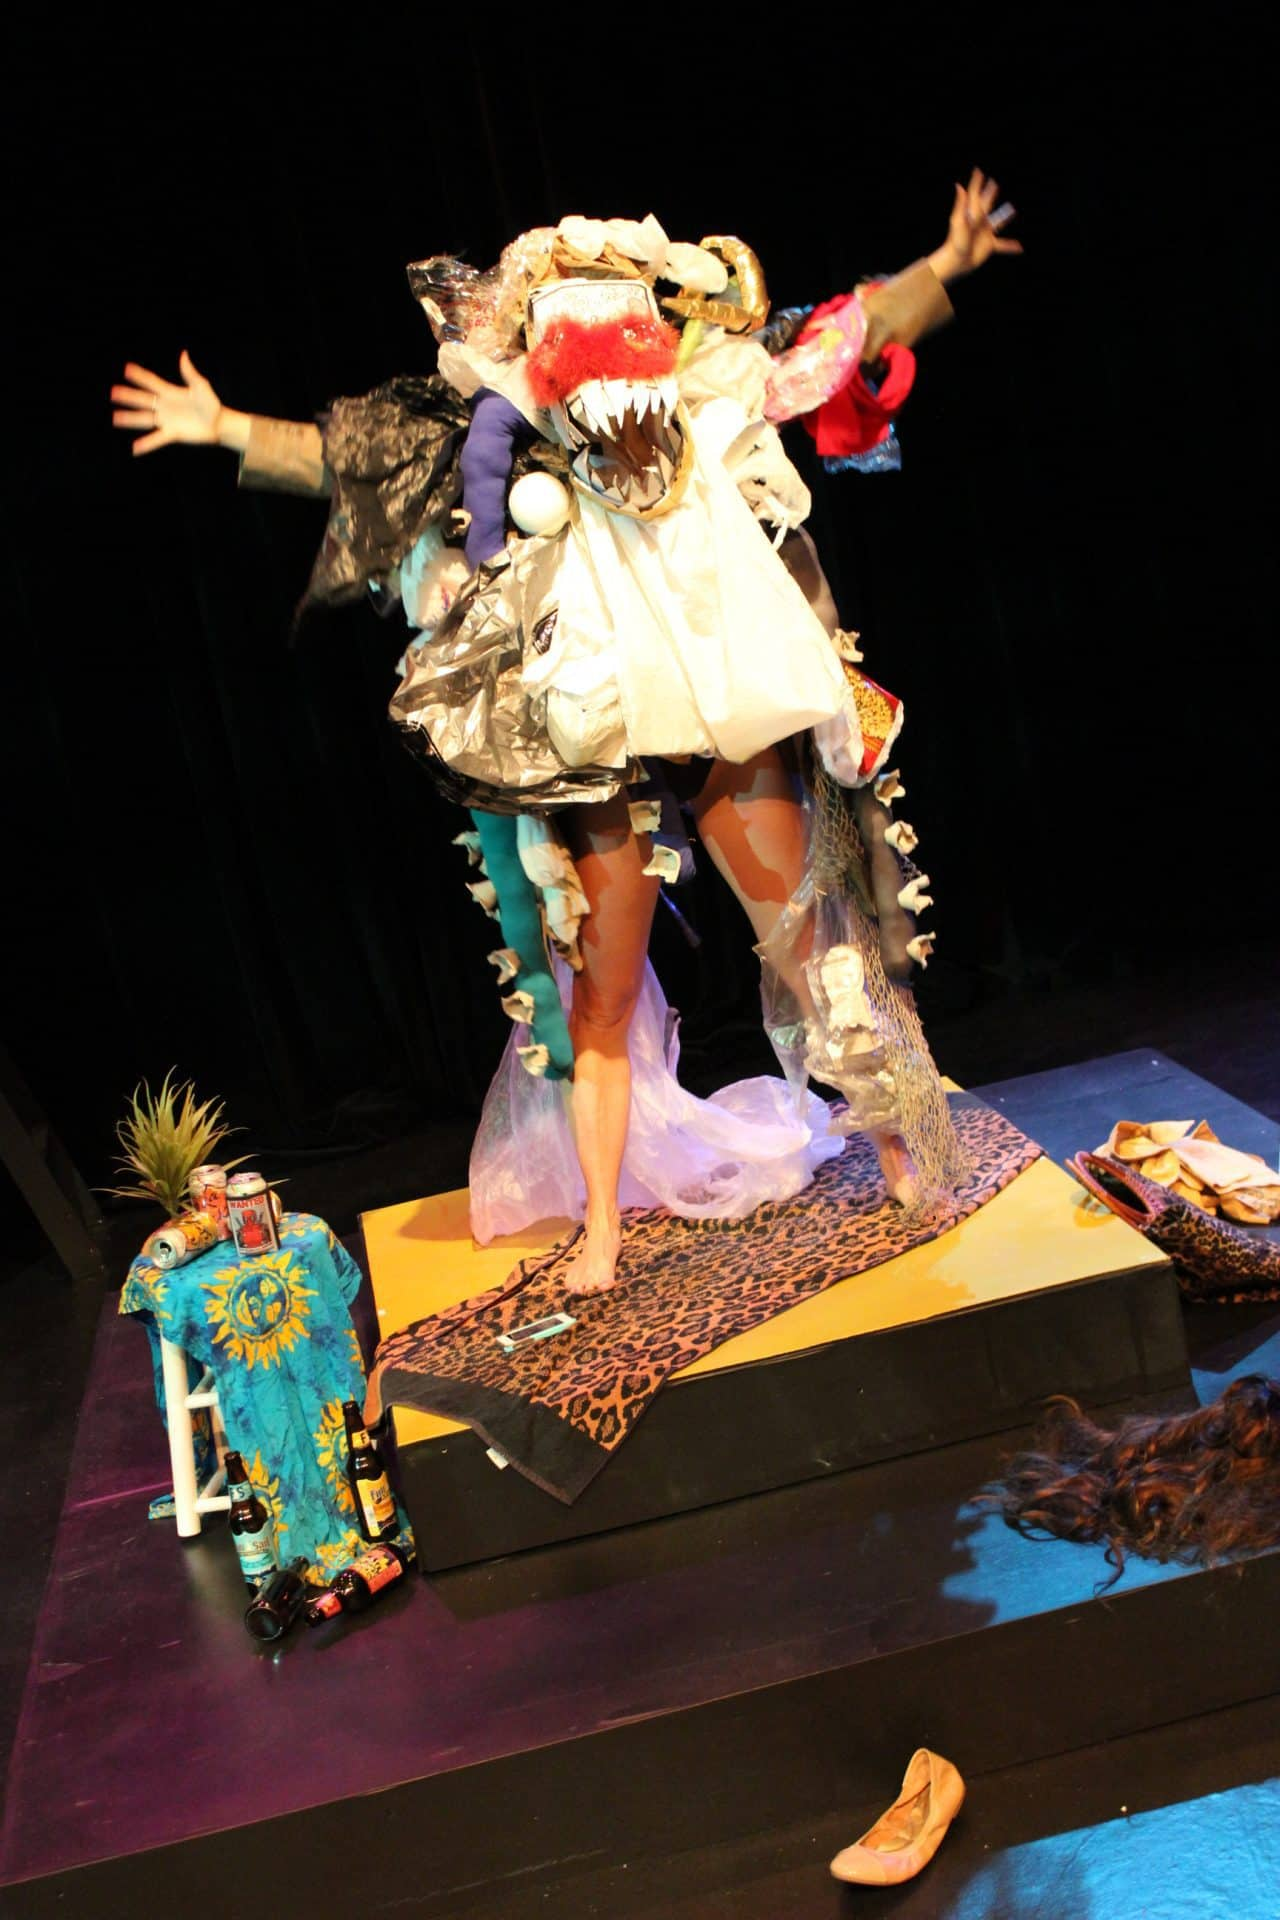 Photograph of Julia Bray in costume on stage